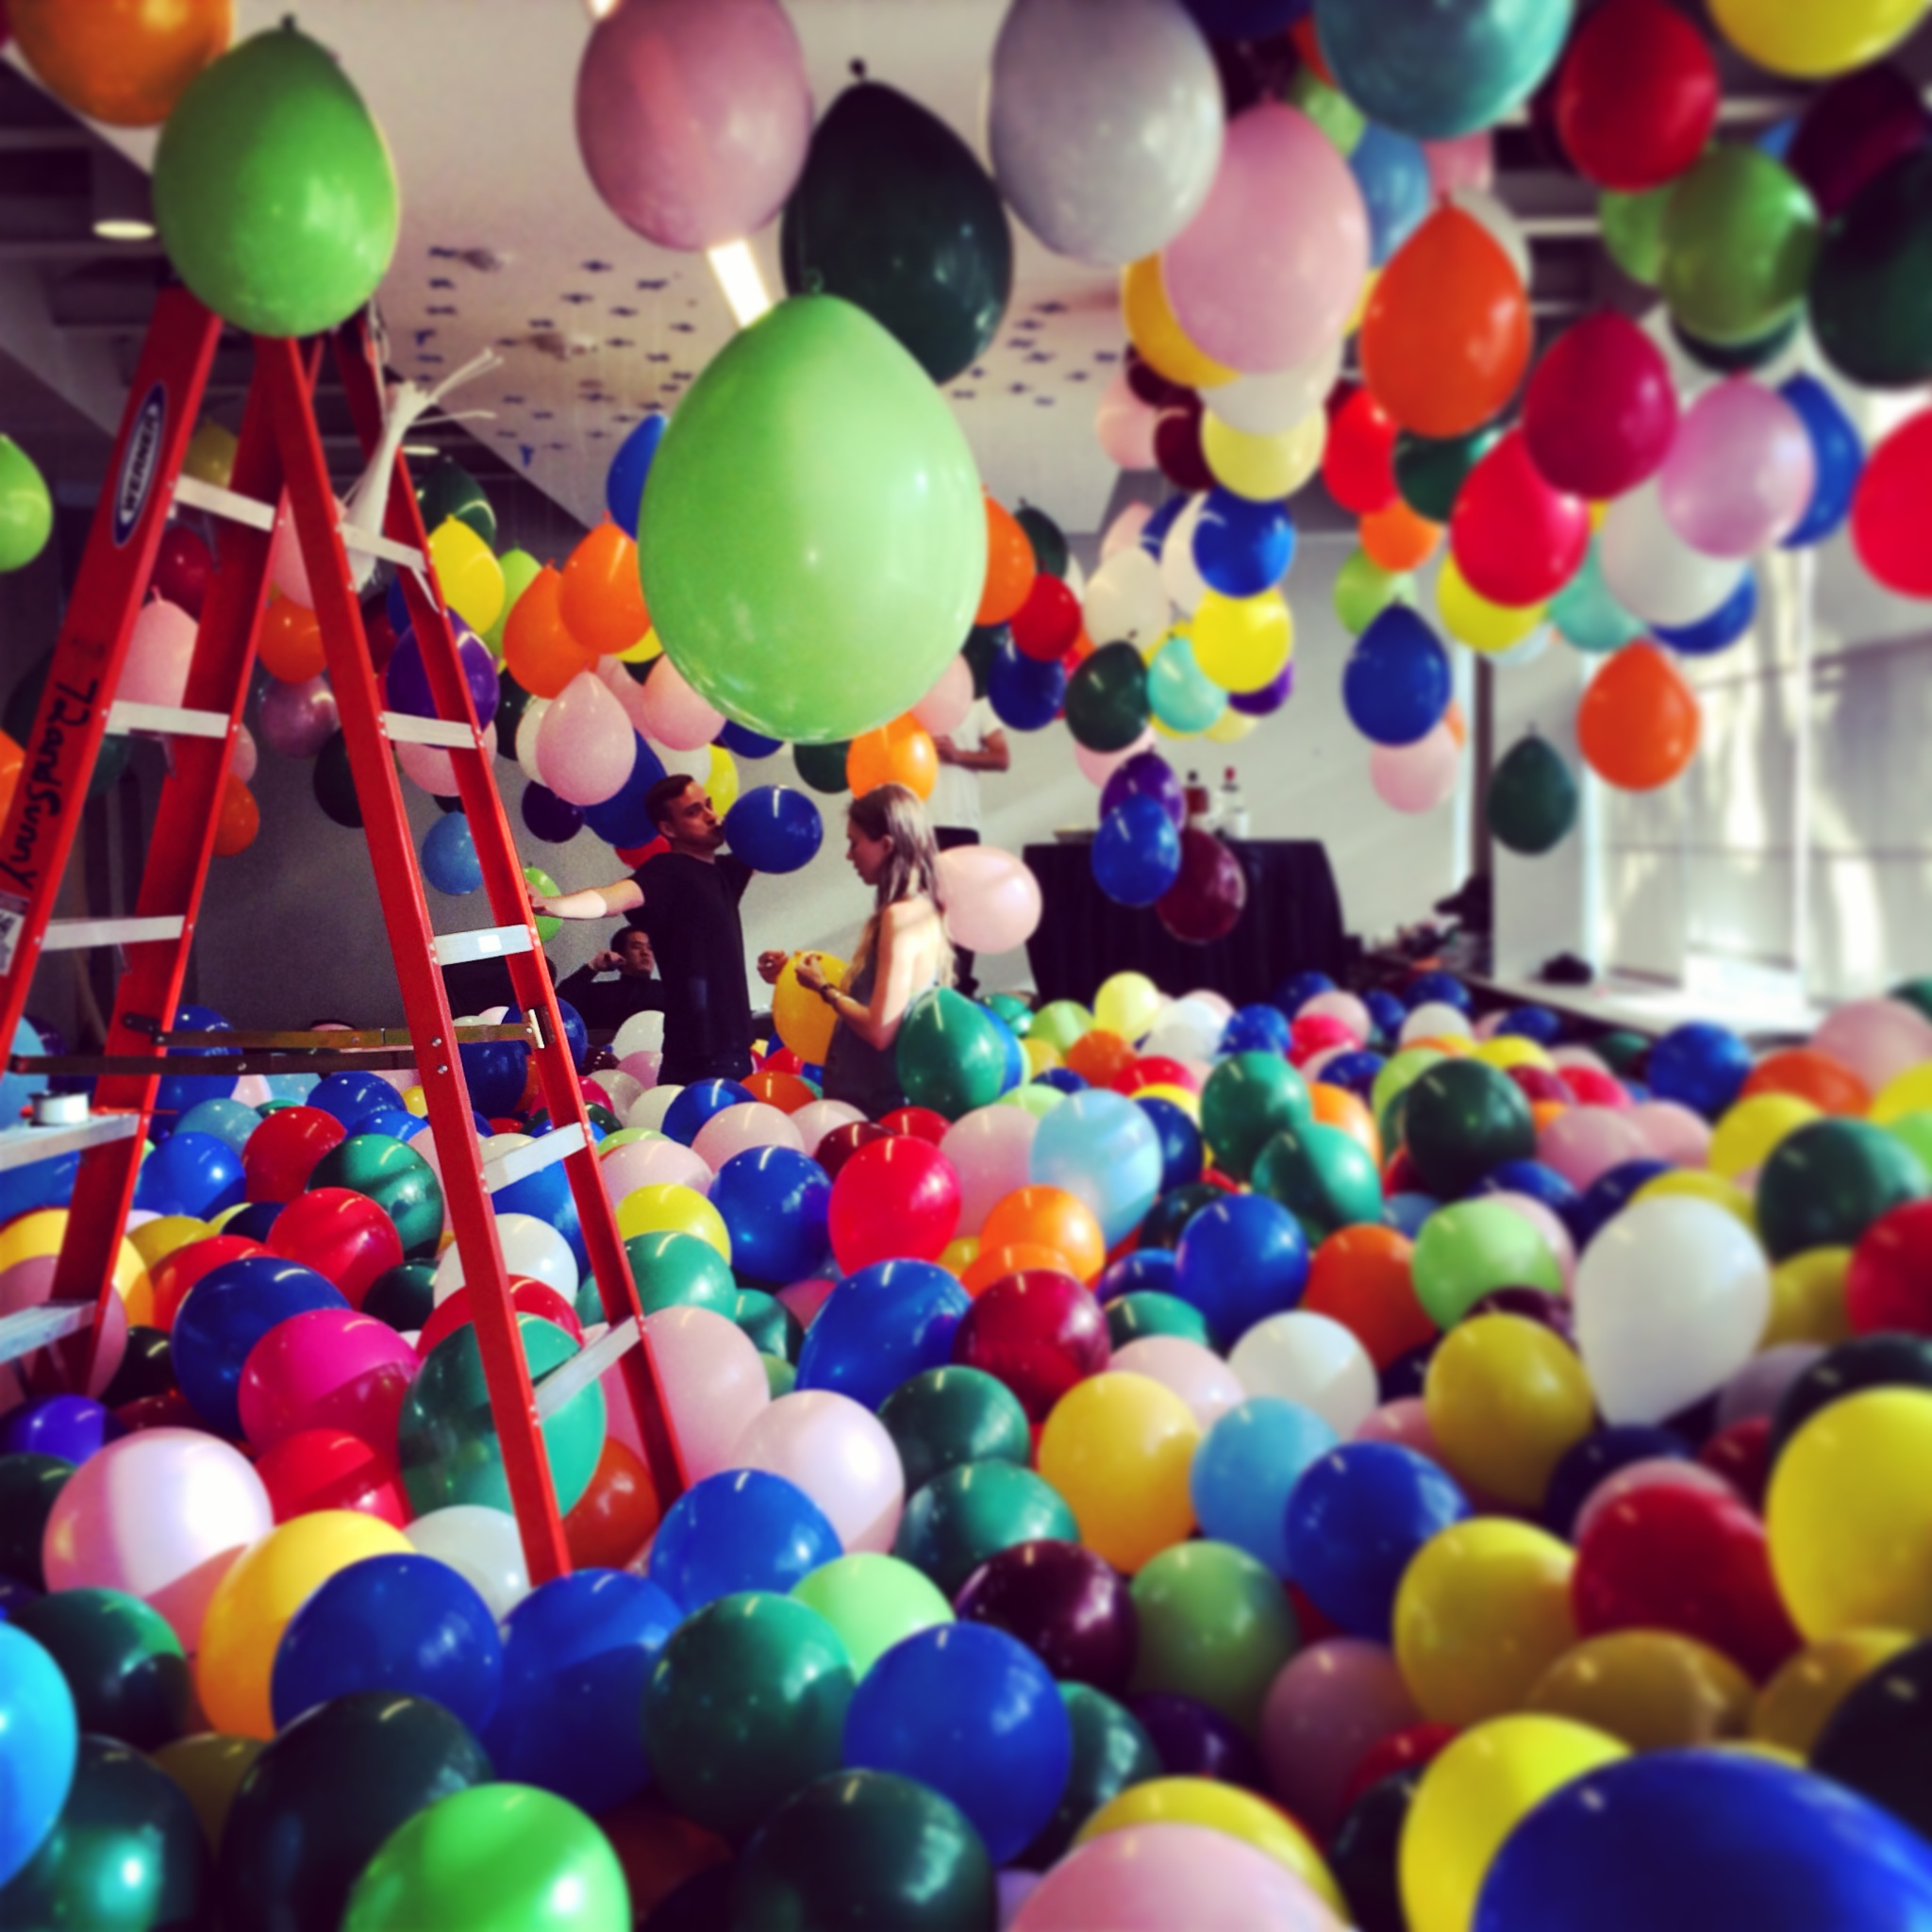 Filling a room with balloons, day 2.